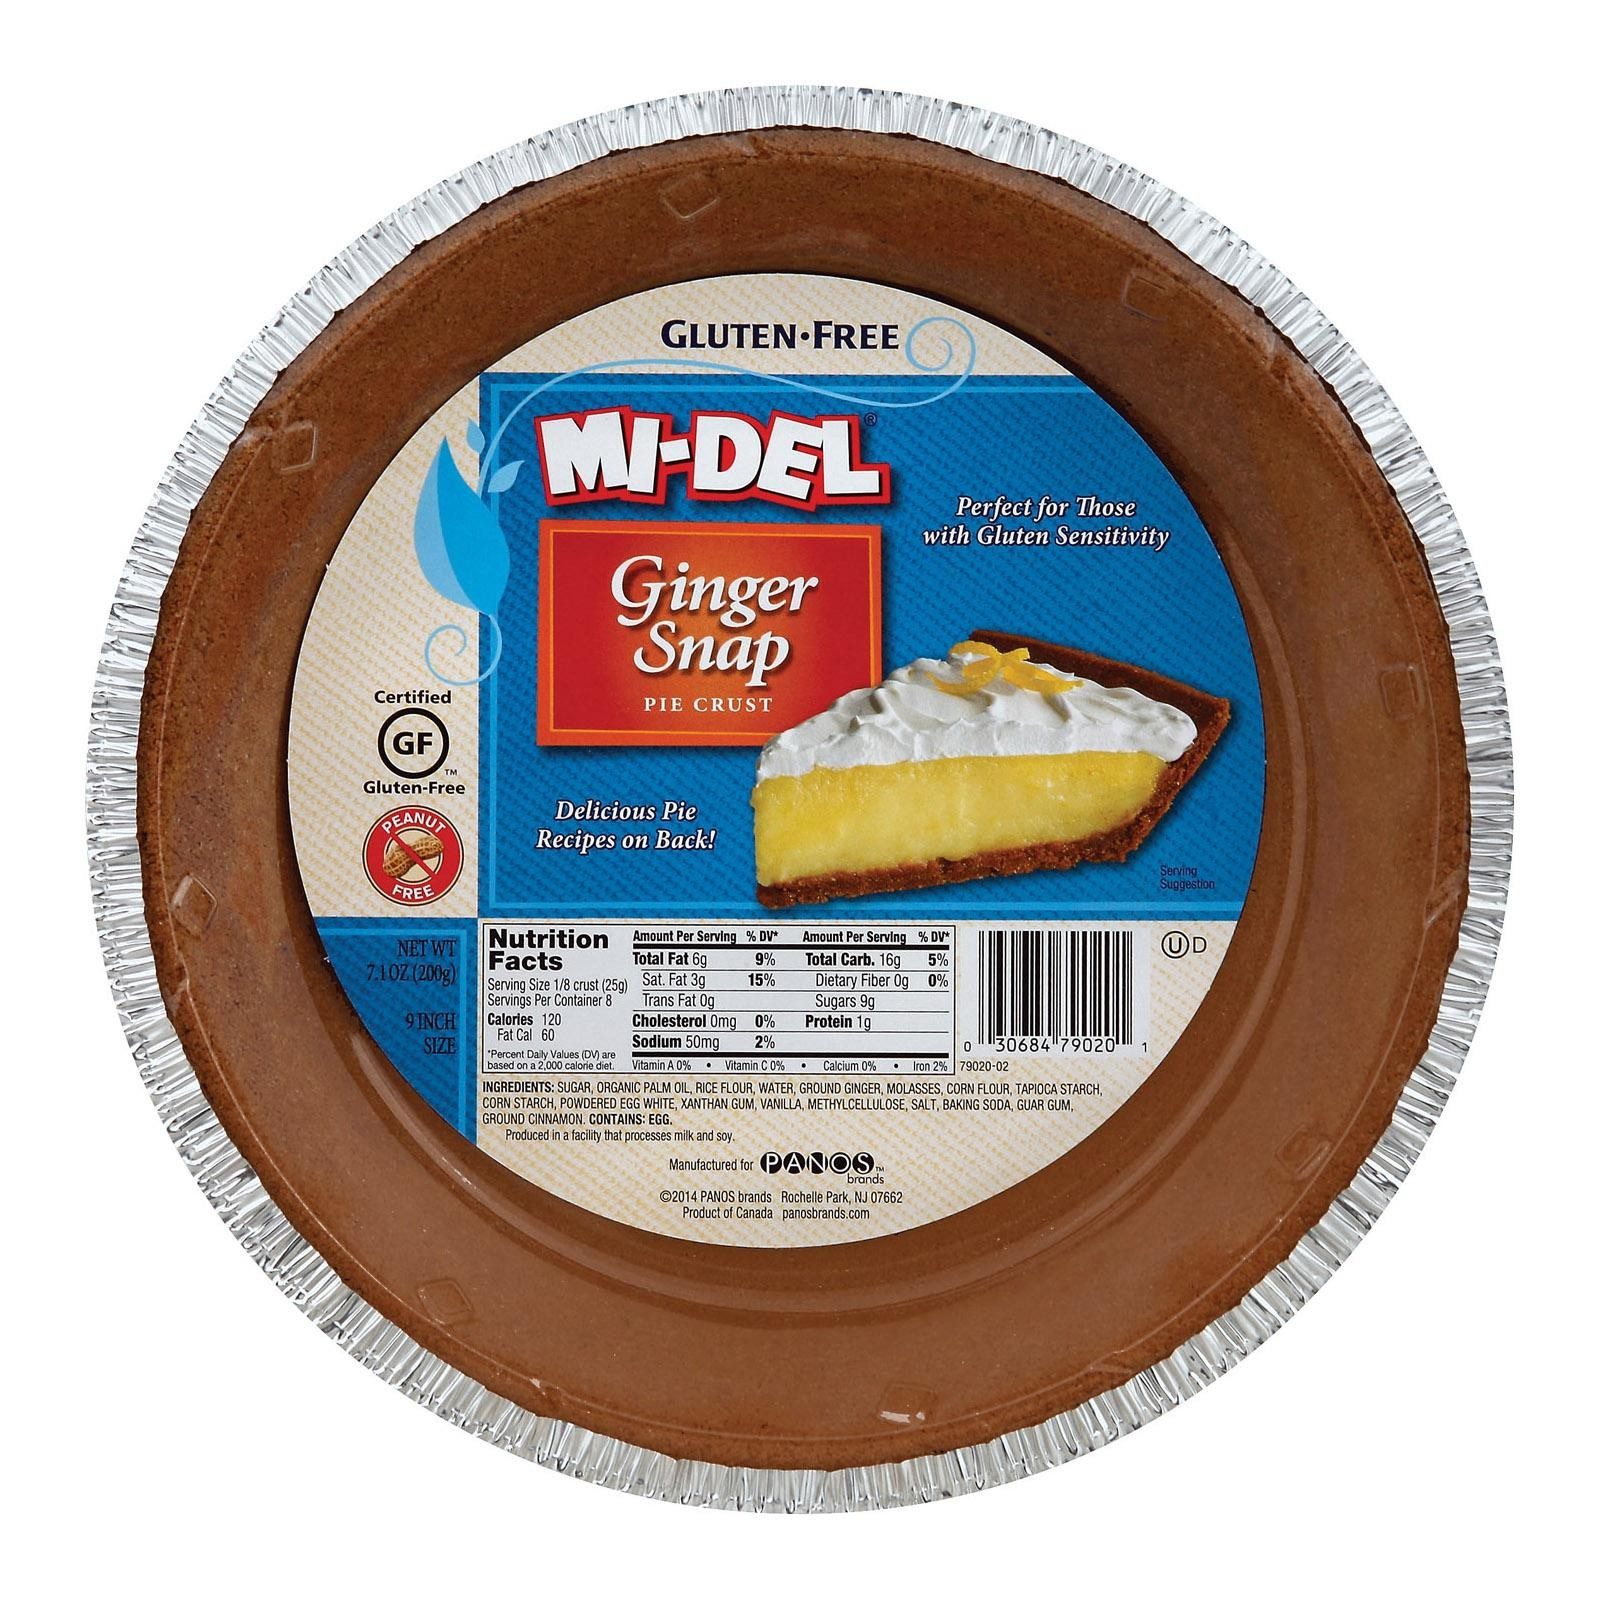 Midel Gluten Free Ginger Snaps - Pie Crust - pack of 12 - 7.1 Oz.